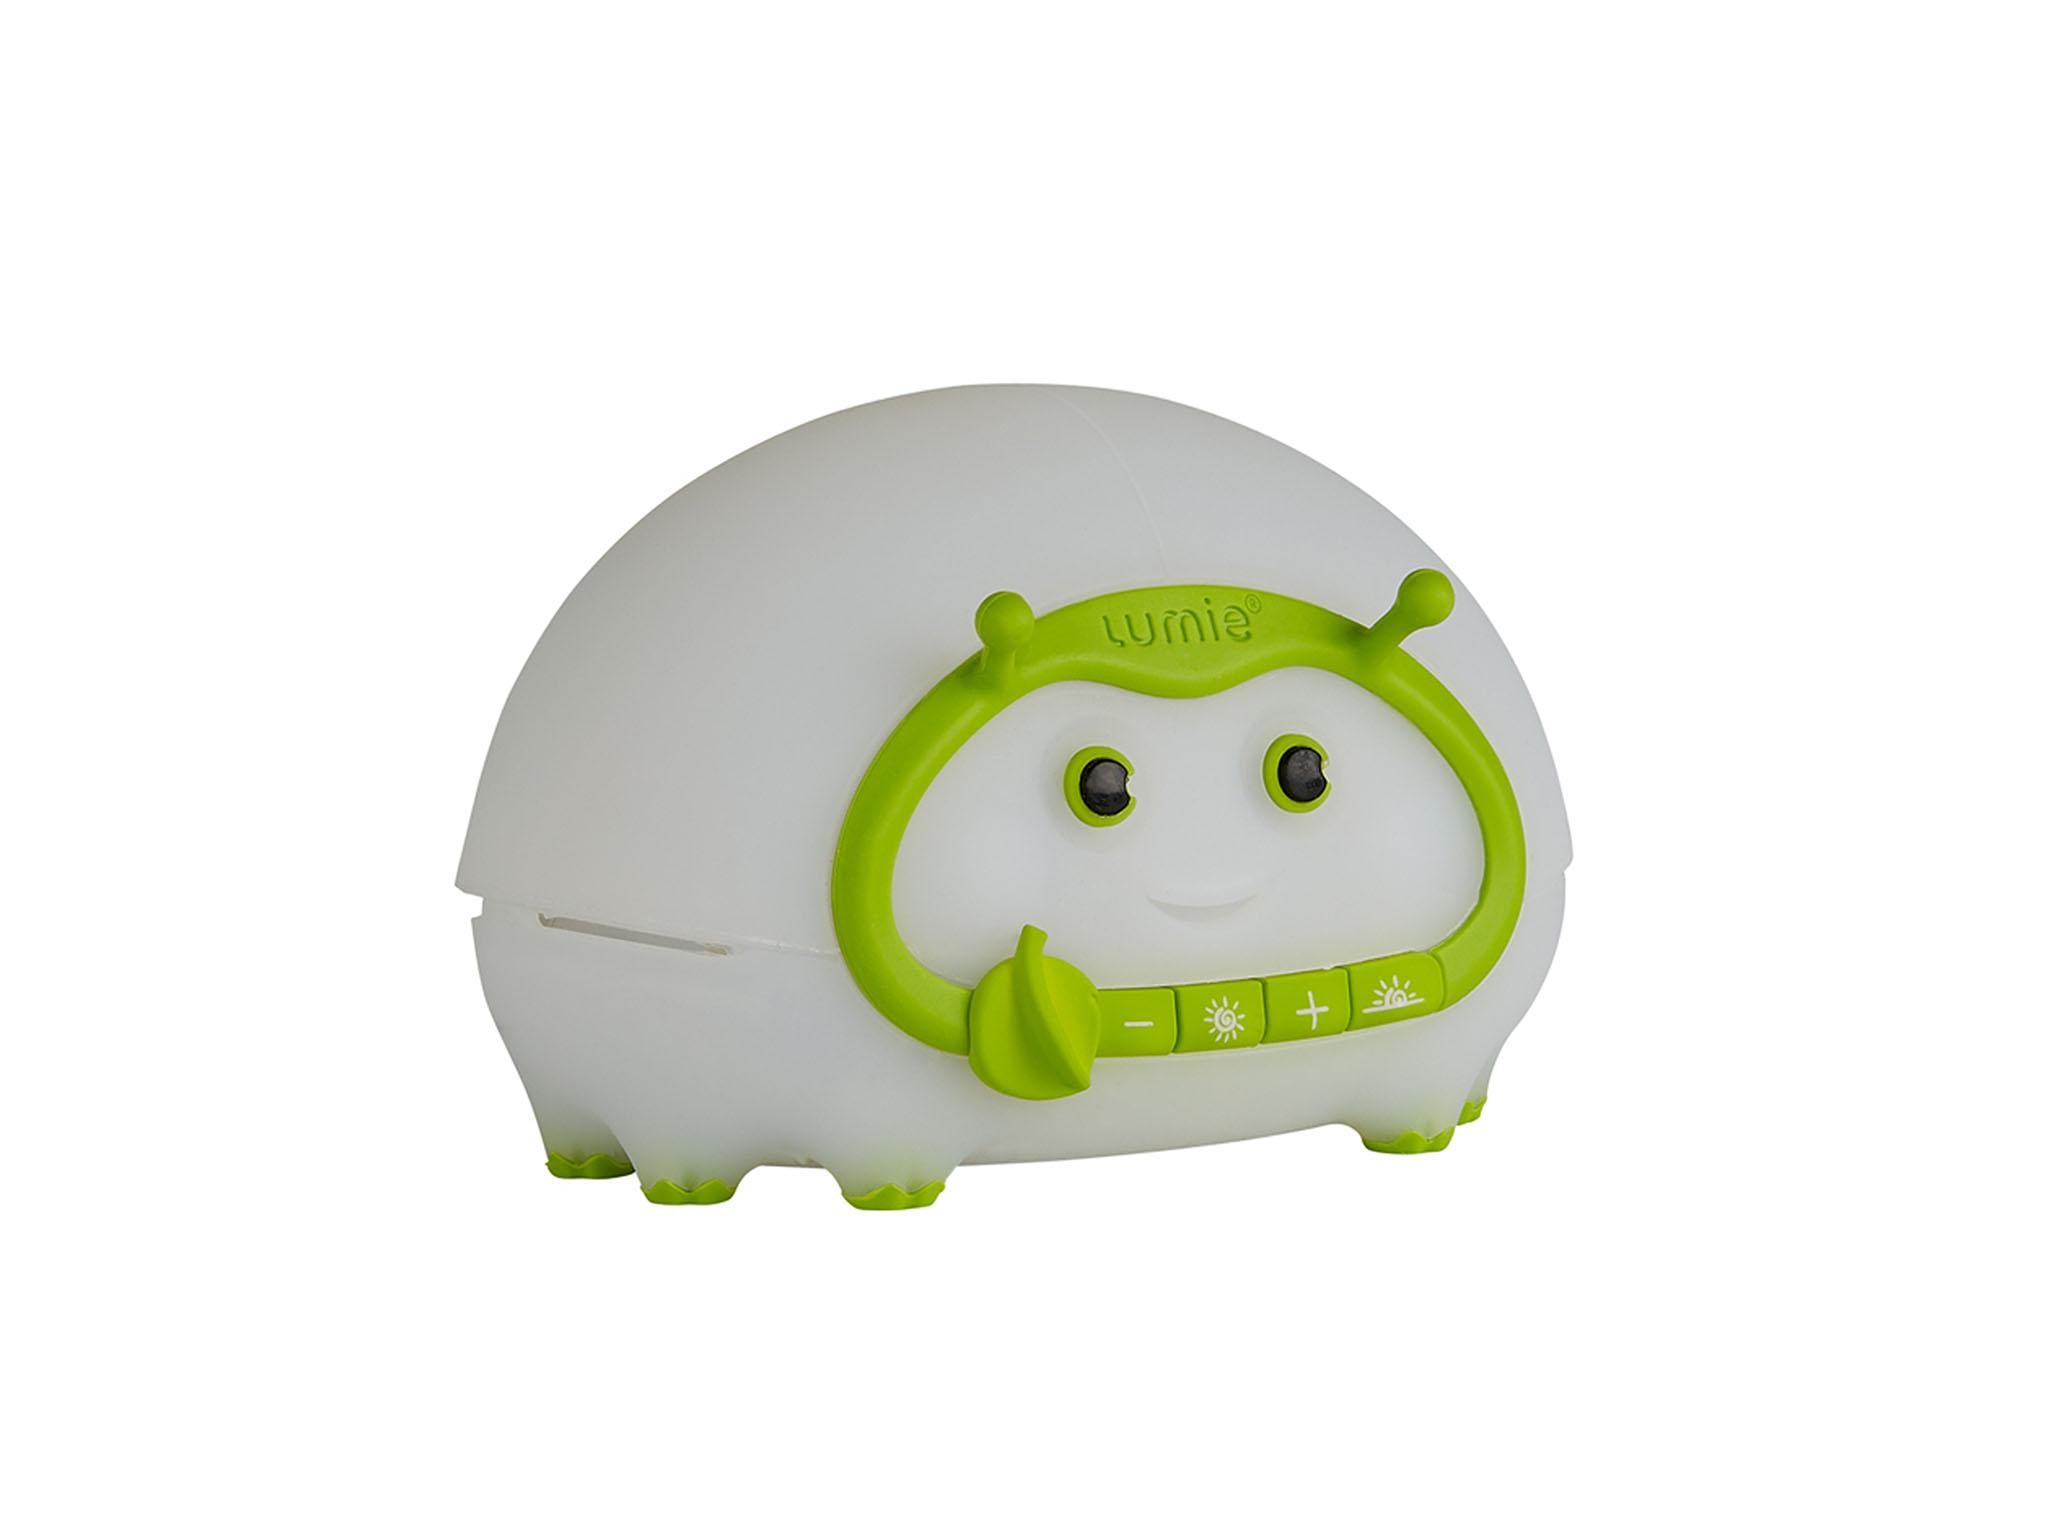 Best nightlight to help your little one fall and stay asleep